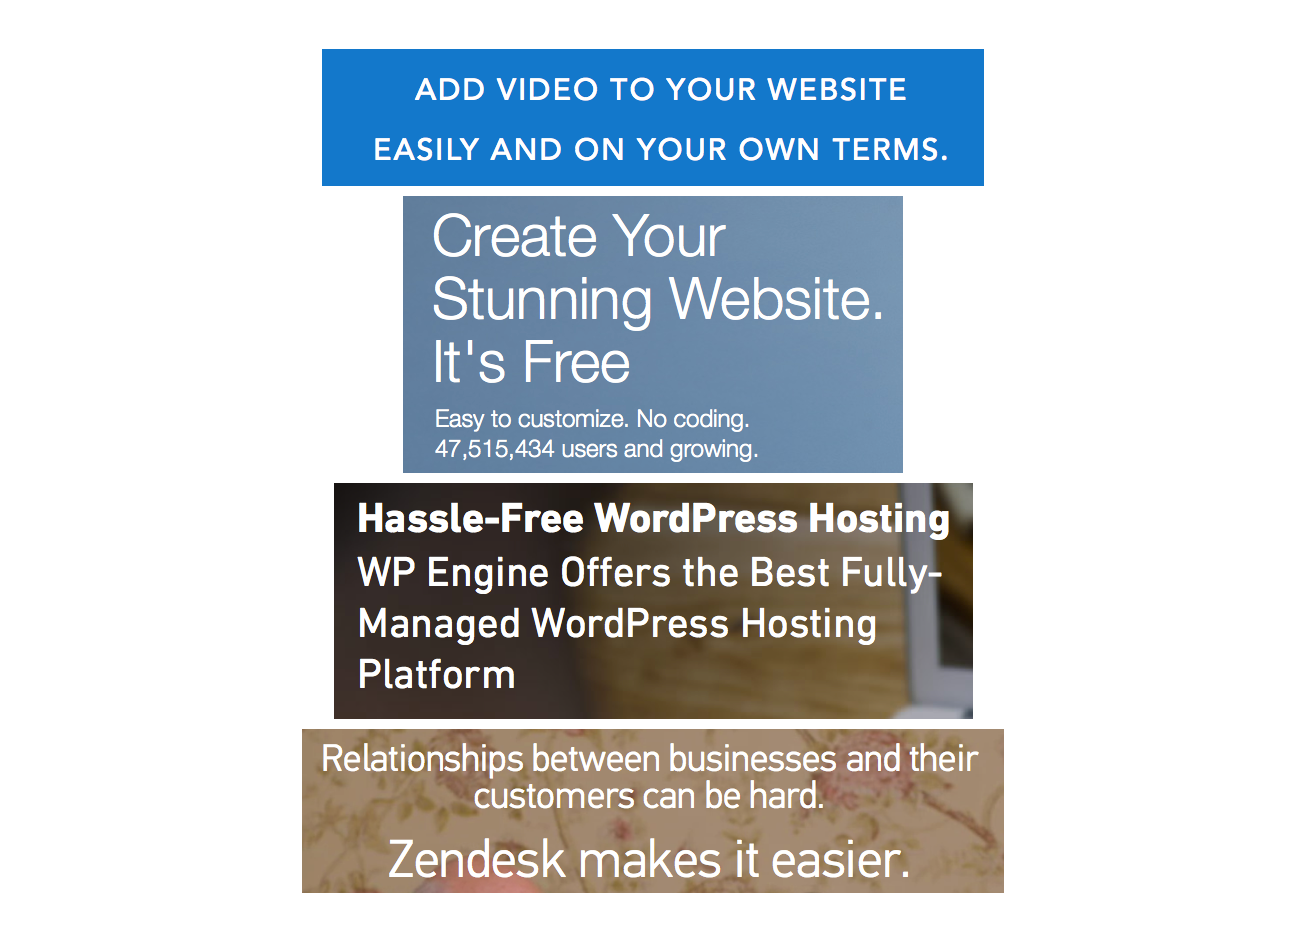 The Ultimate Saas Swipe File 42 Examples Of Copywriting That